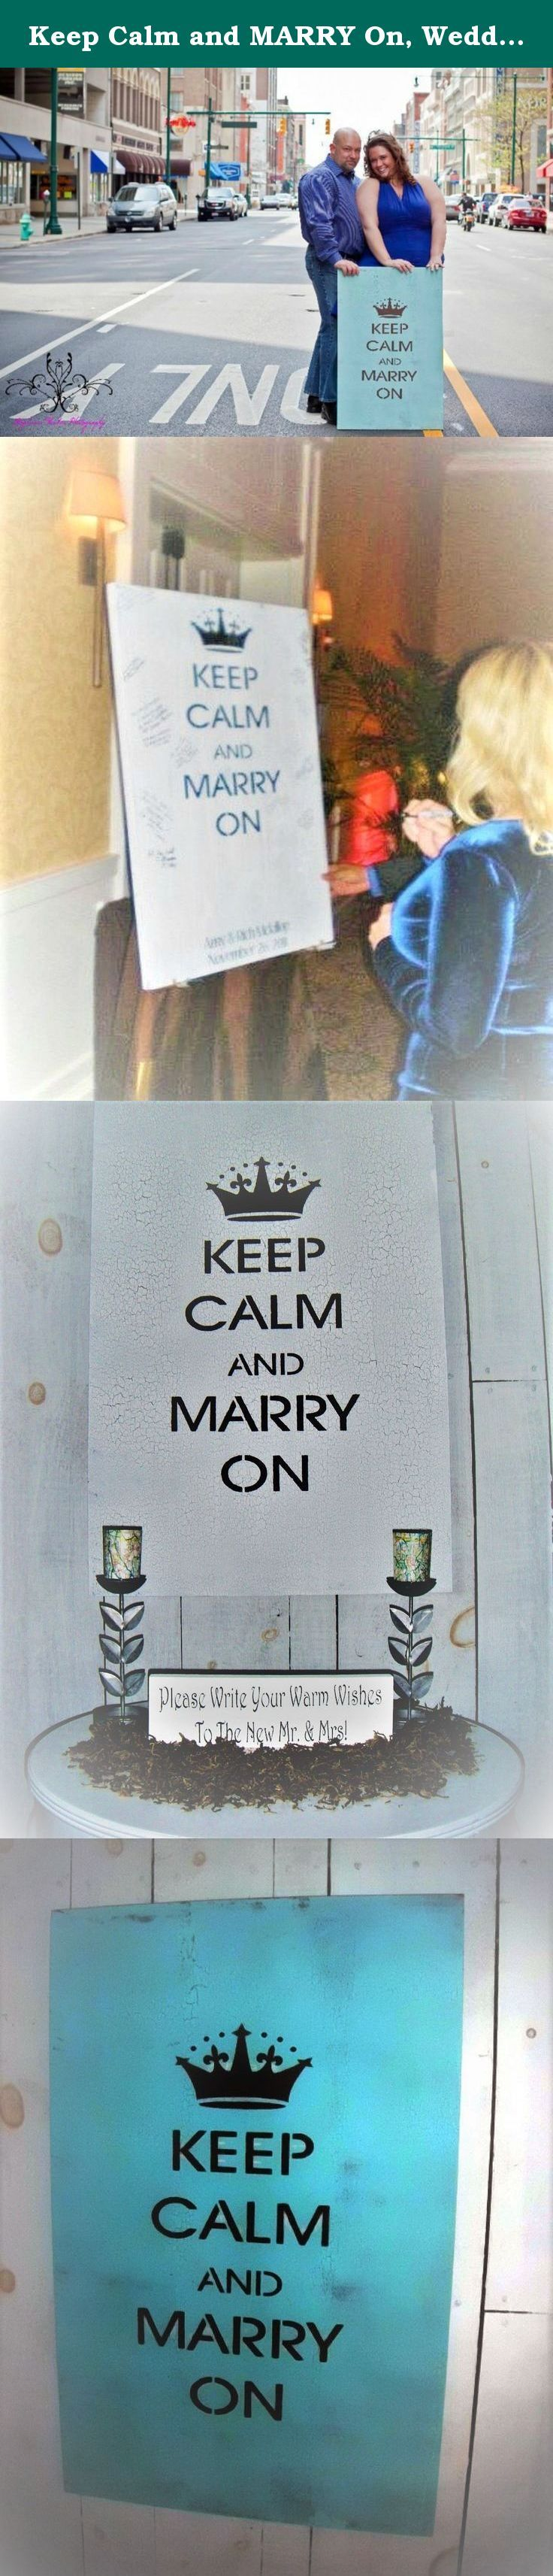 Keep Calm and MARRY On, Wedding guest book alternative, guestbook. Wedding Guestbook, Guest book alternative, Keep Calm and MARRY On sign ♥♥♥♥♥♥♥♥♥♥♥♥♥♥♥♥♥♥♥♥♥♥♥♥♥♥♥♥♥♥♥♥♥♥♥♥♥♥♥♥♥♥♥♥♥♥♥♥♥♥♥♥♥♥♥♥♥♥♥♥♥♥♥♥♥♥♥♥♥♥♥♥♥ If you're not familiar with this saying here's a little background info: The British Government commissioned a series of propaganda posters to be distributed throughout the country at the onset of hostilities with Germany. The intent of the poster was to convey a message from the...